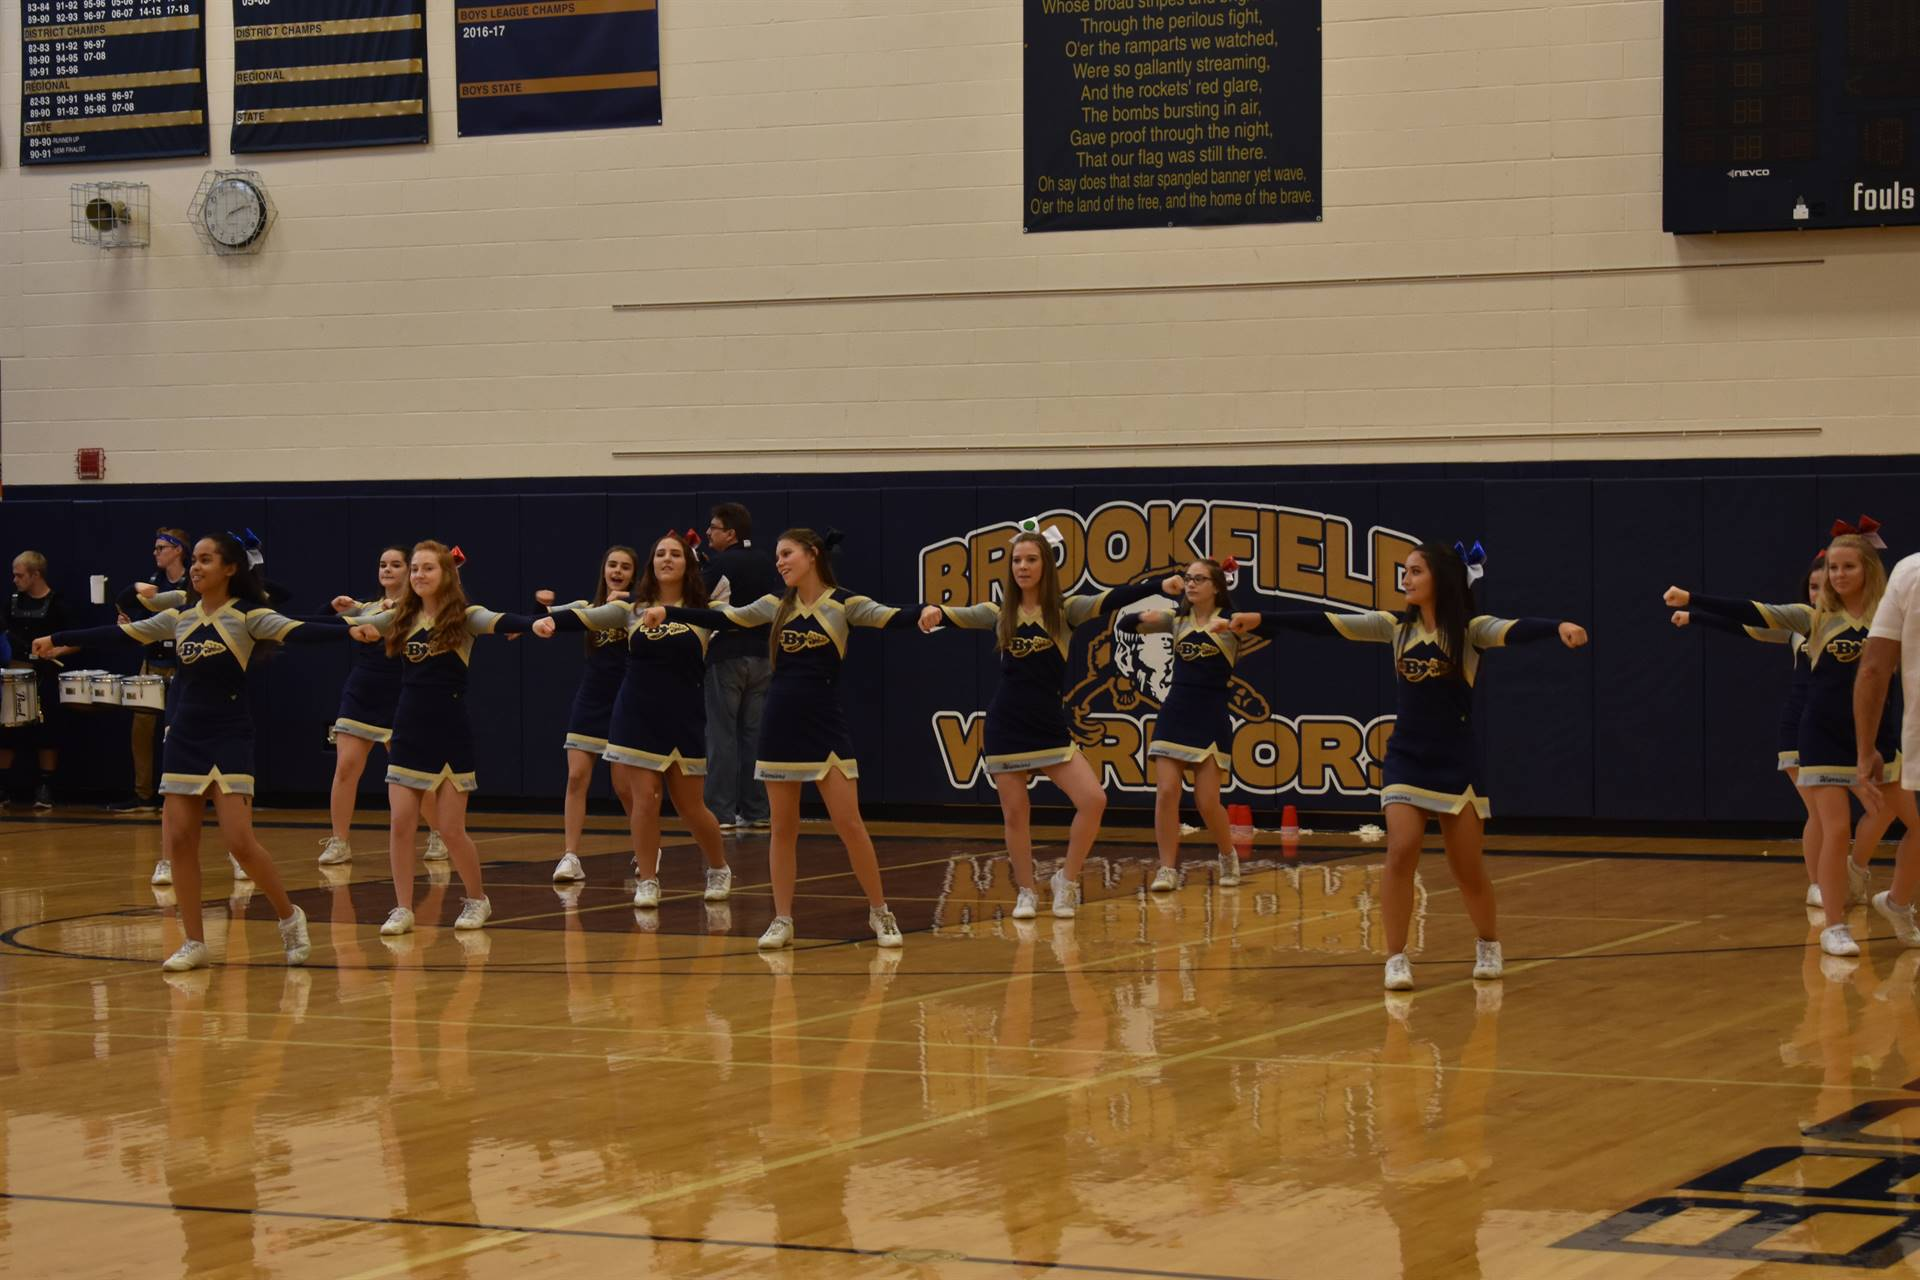 The cheerleaders during Brookfield High School Pep Assembly